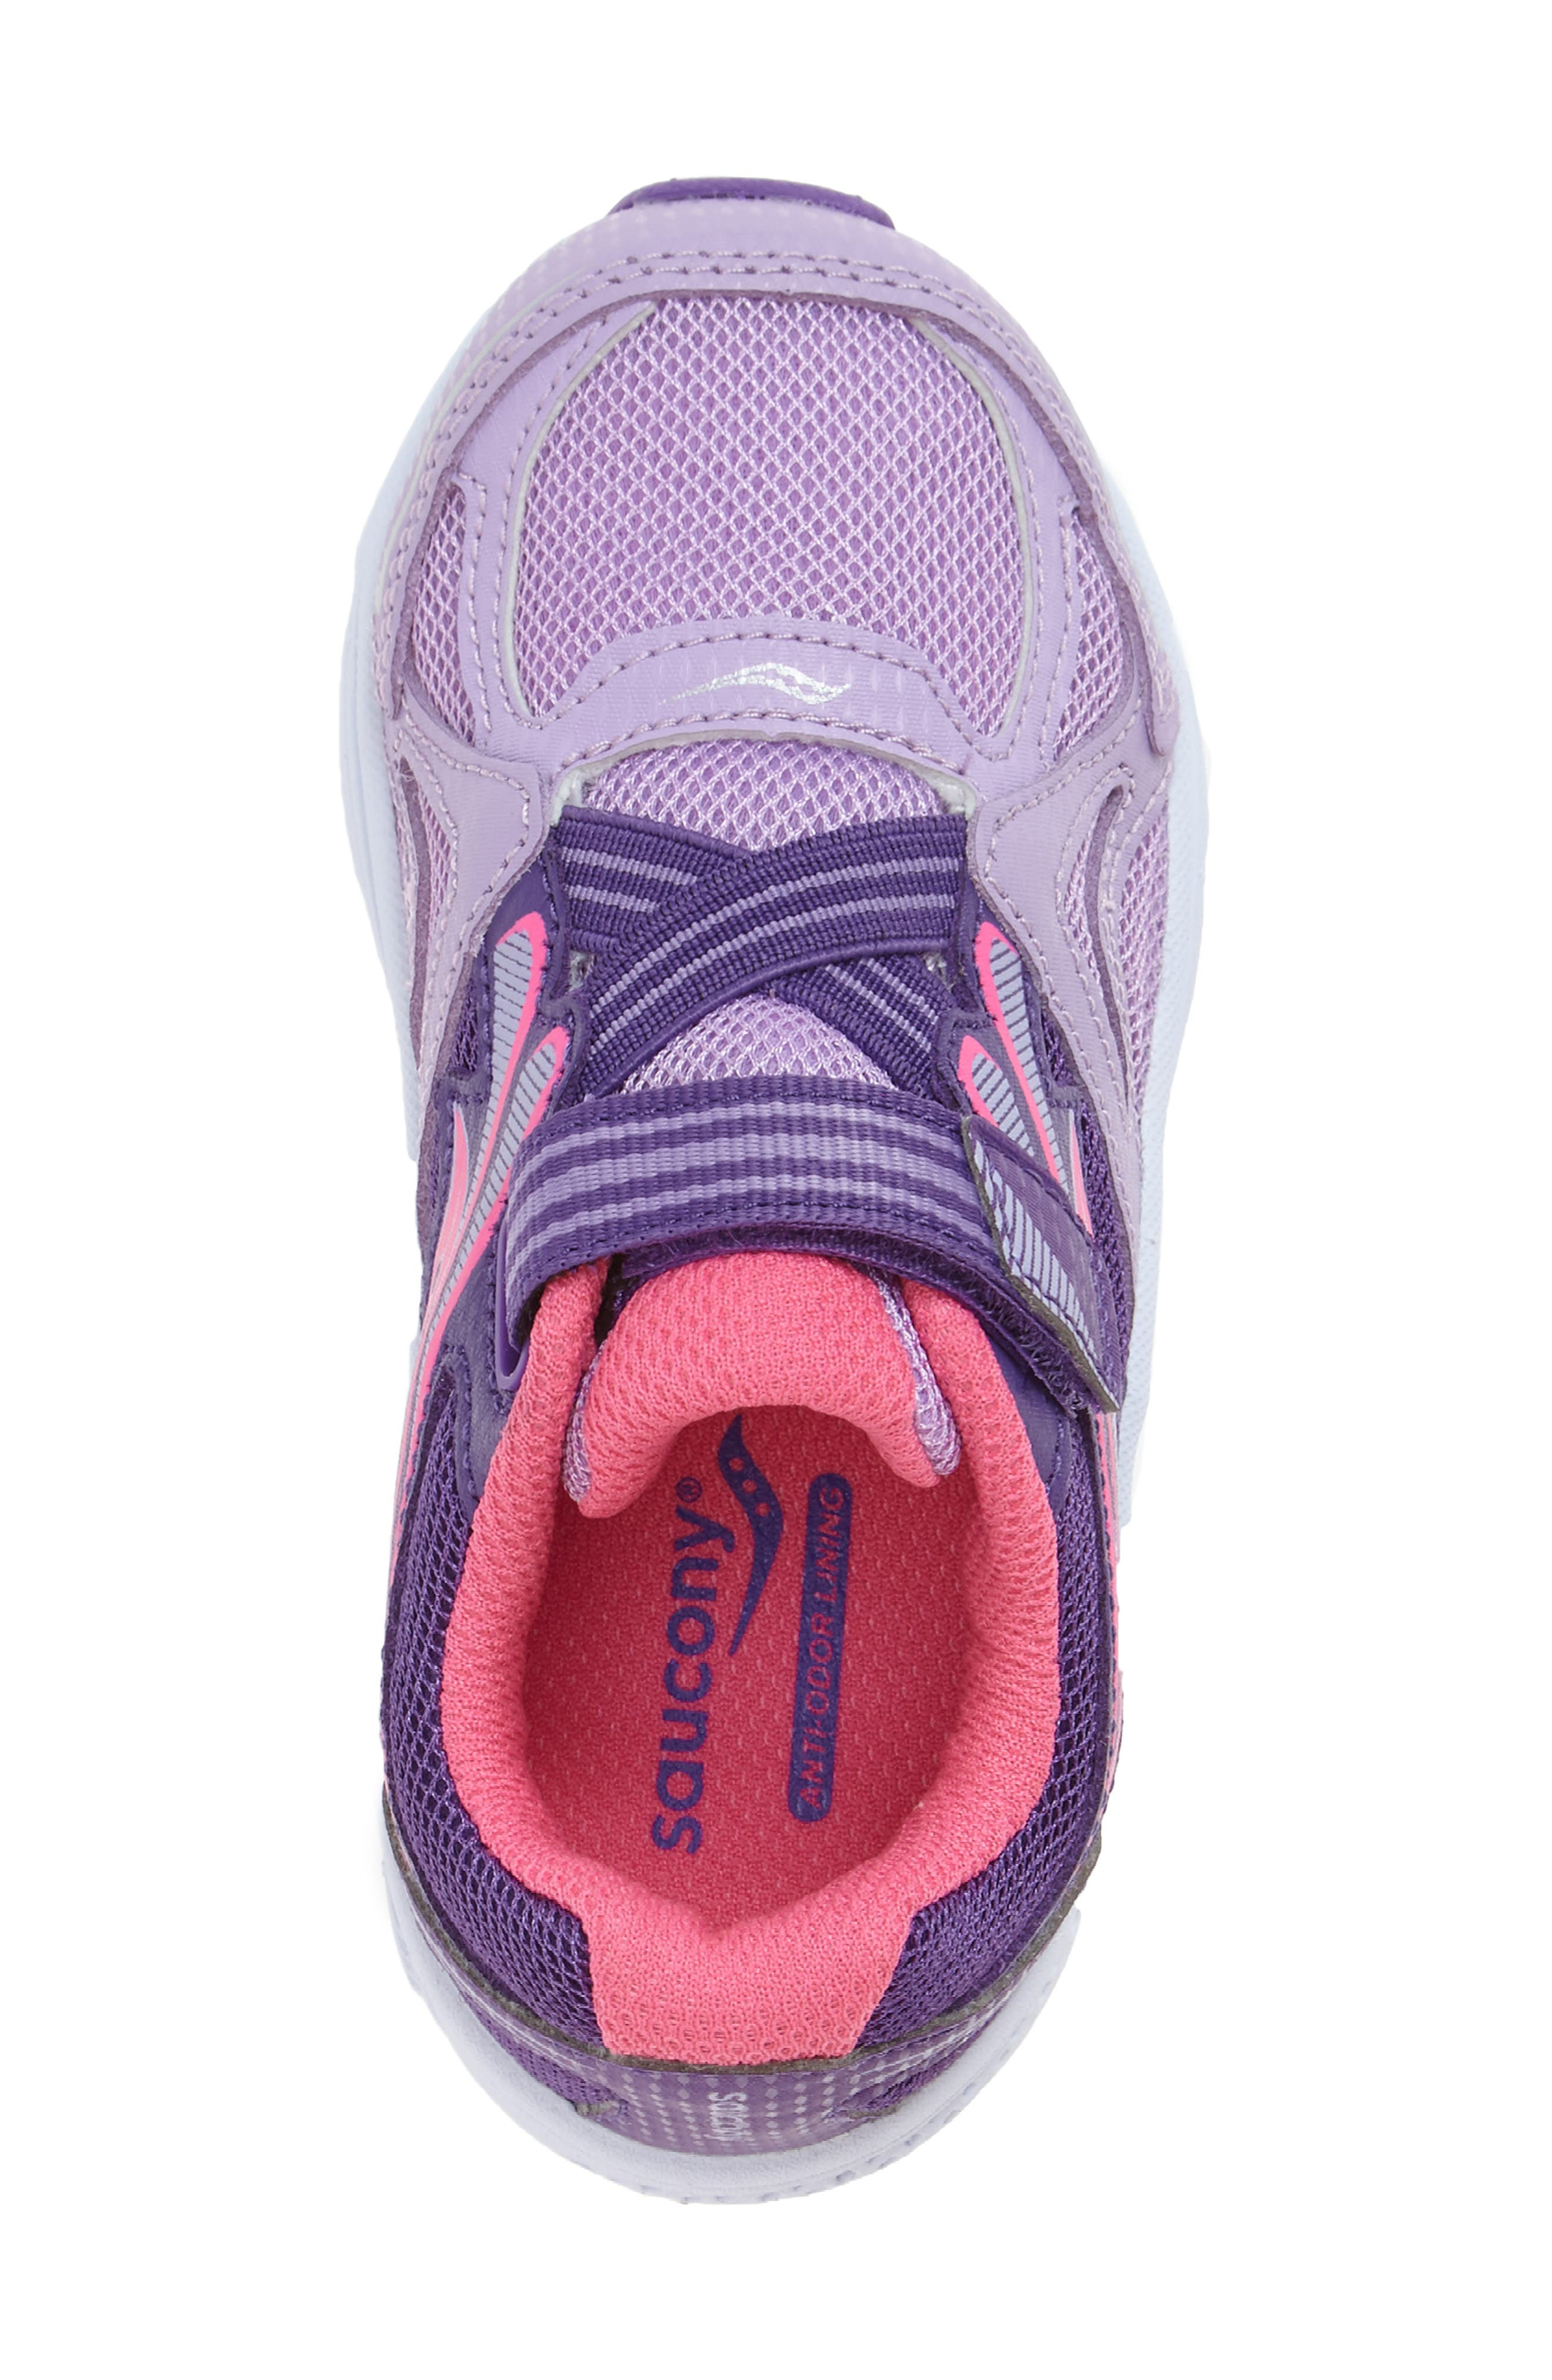 Baby Ride Sneaker,                             Alternate thumbnail 8, color,